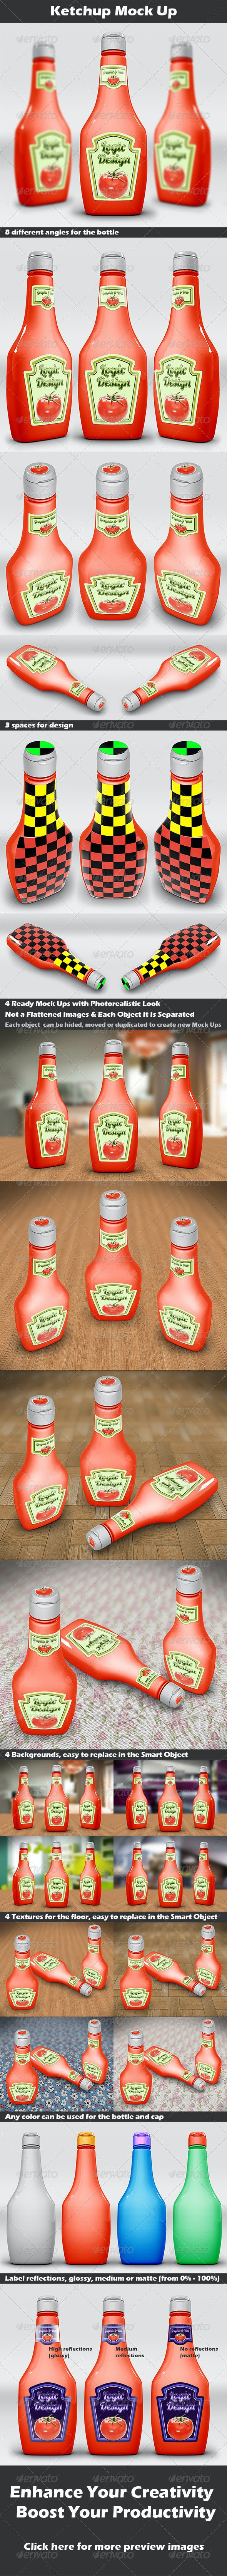 Ketchup Mock Up - Food and Drink Packaging